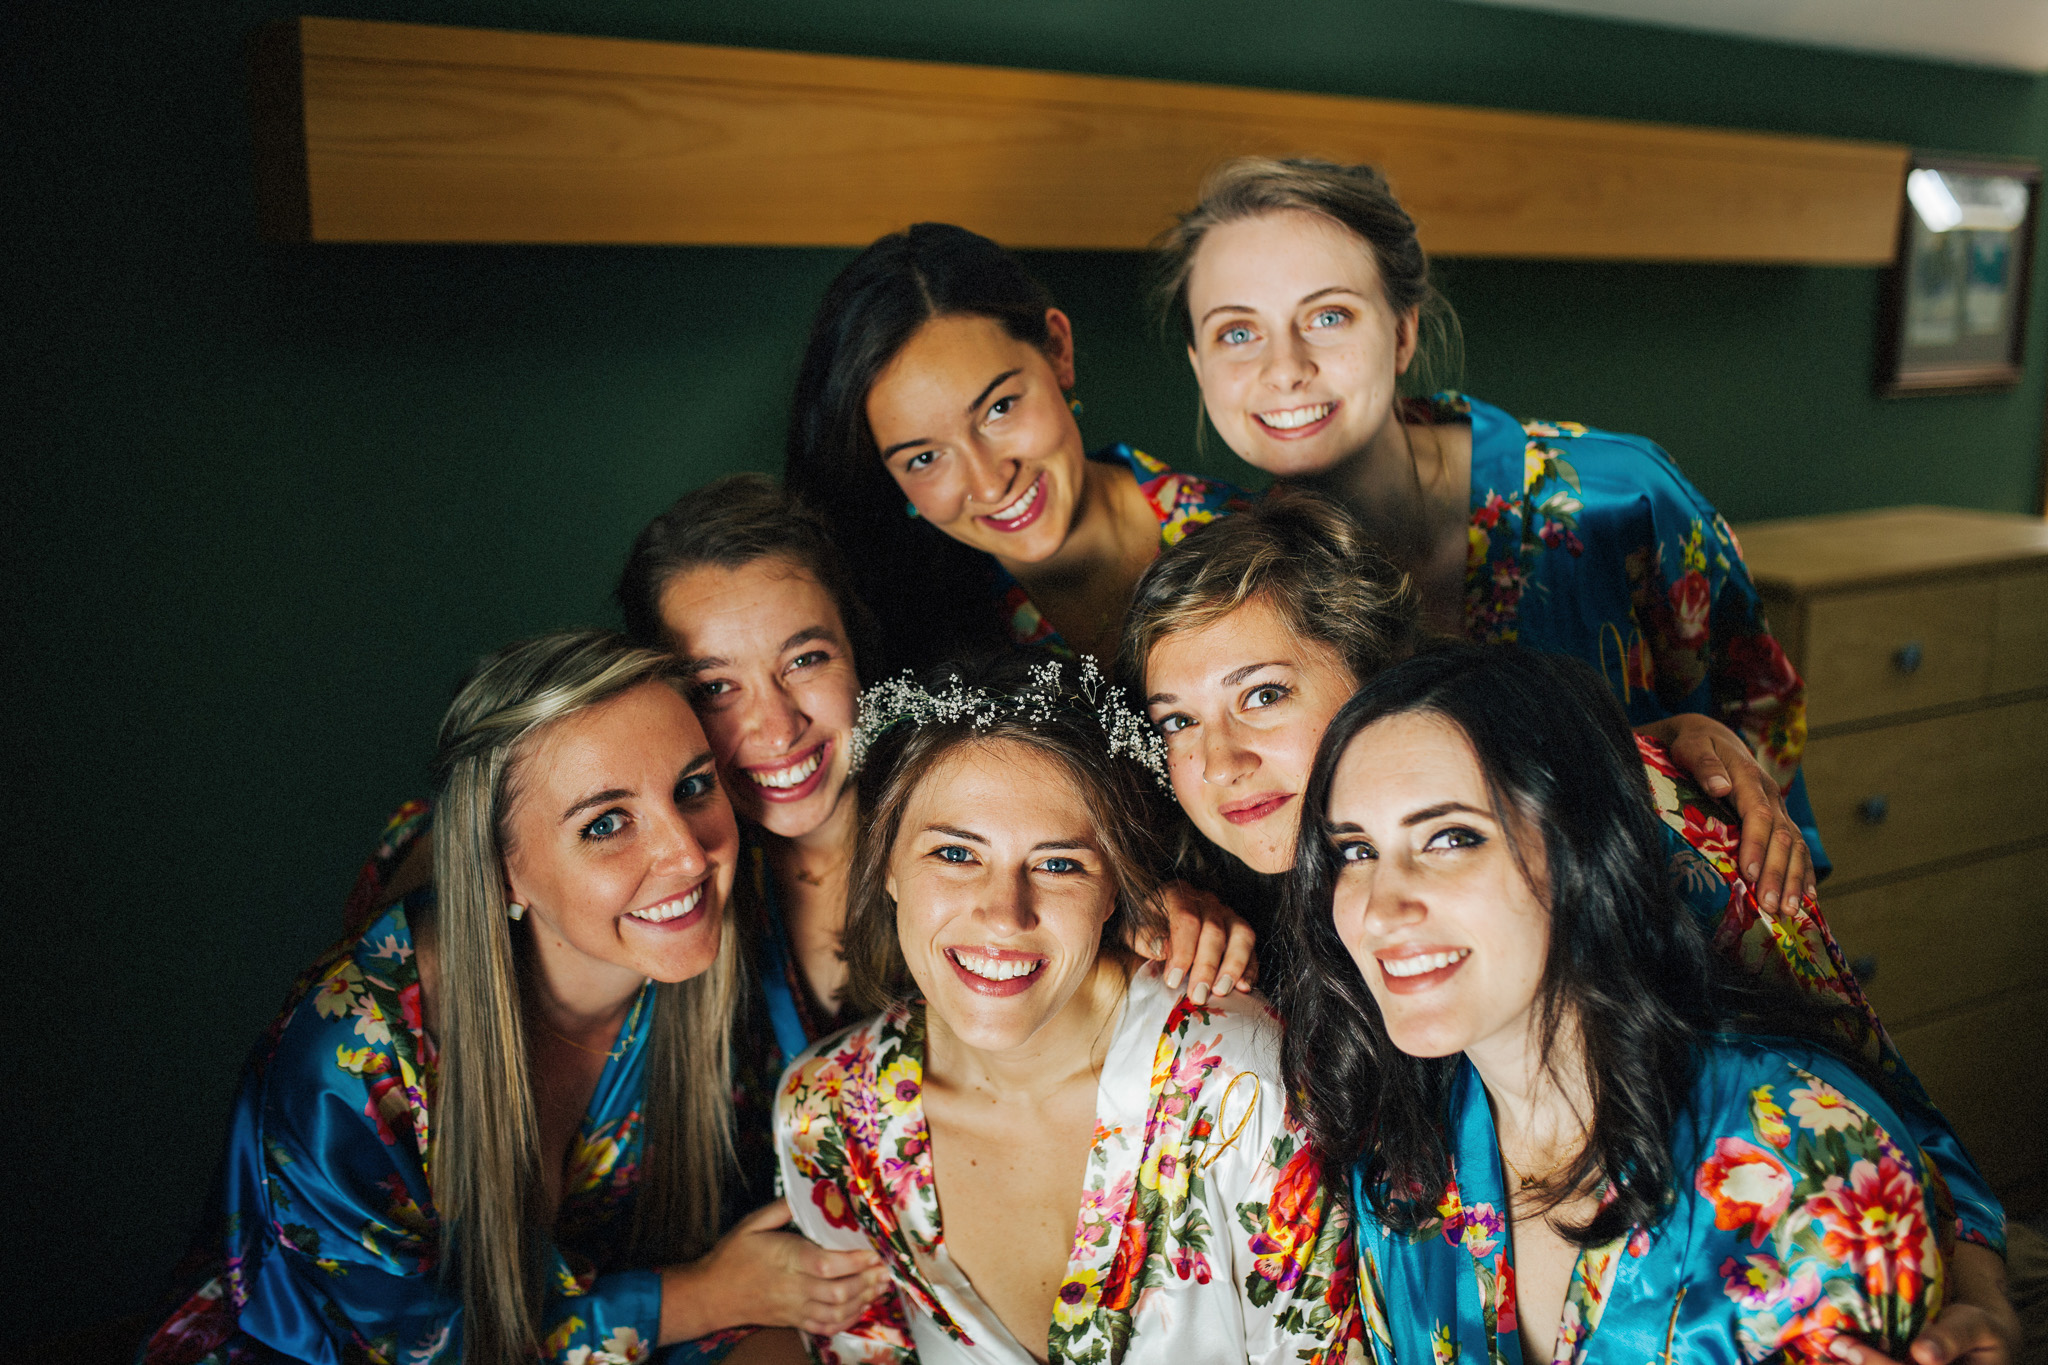 Bridal Party | Getting Ready